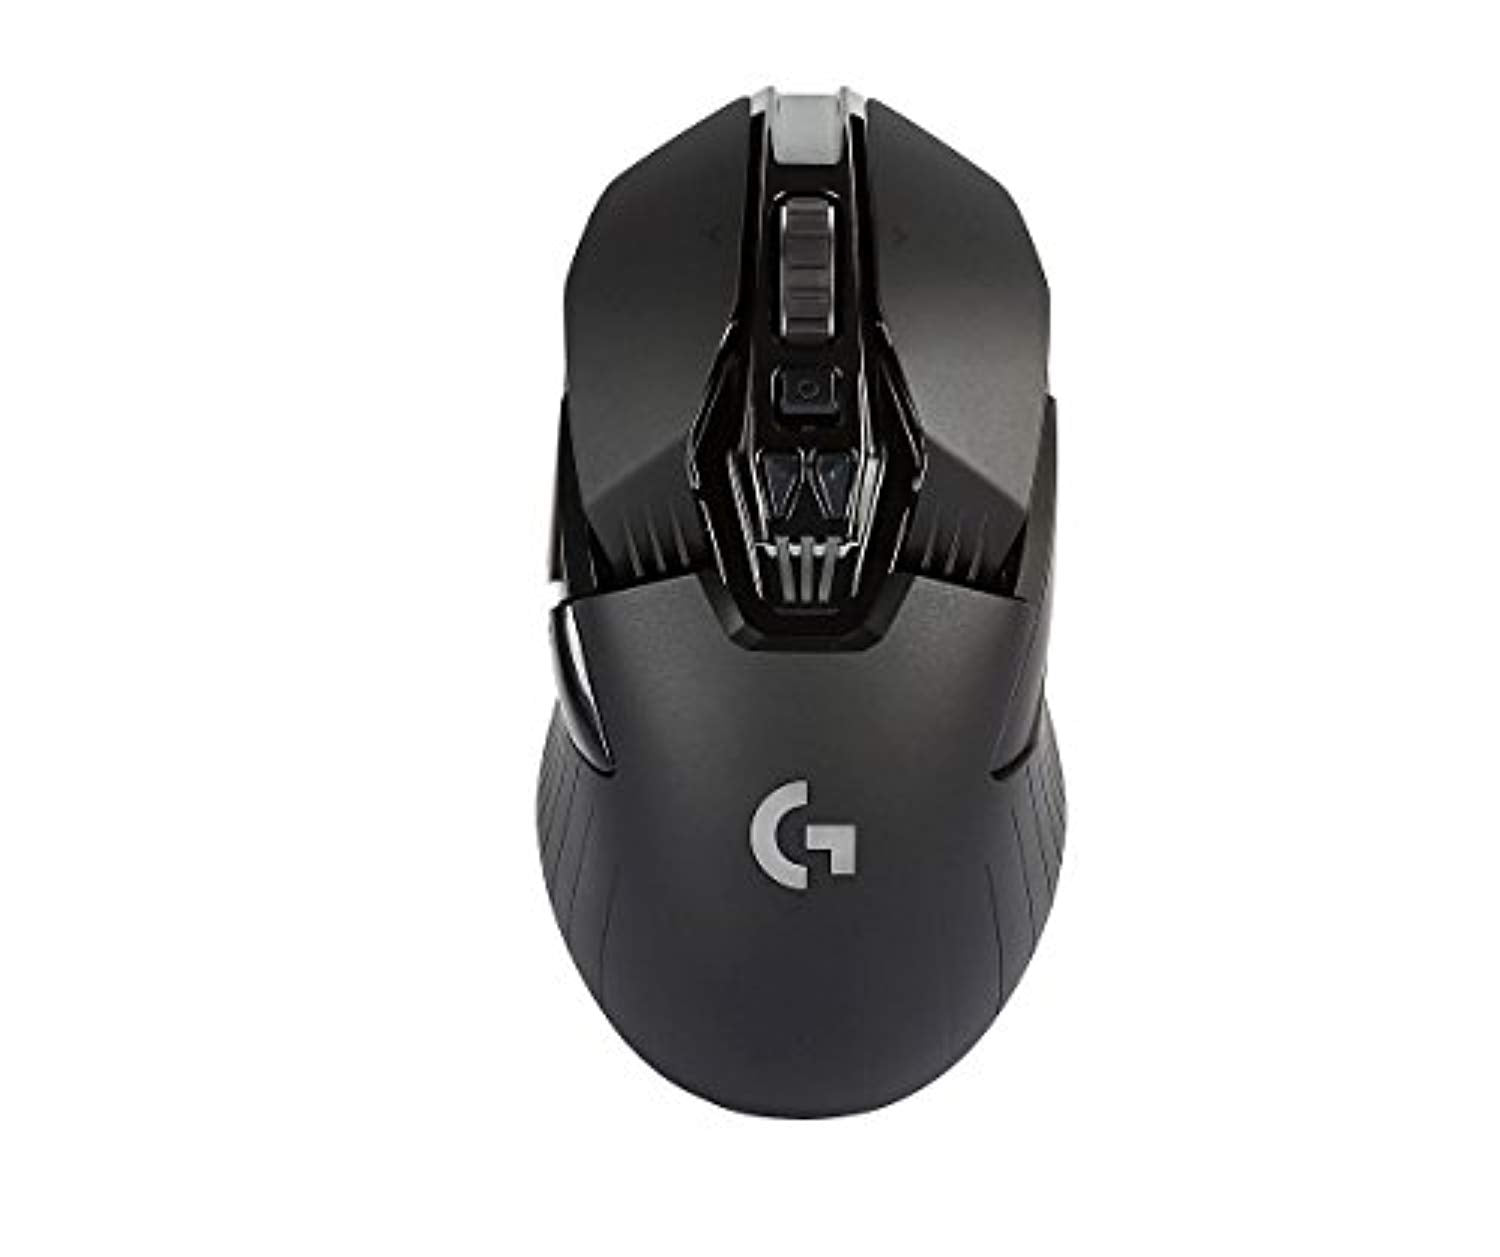 Logitech G900 Wired/Wireless Gaming Mouse Laptop Gamer Genuine ...